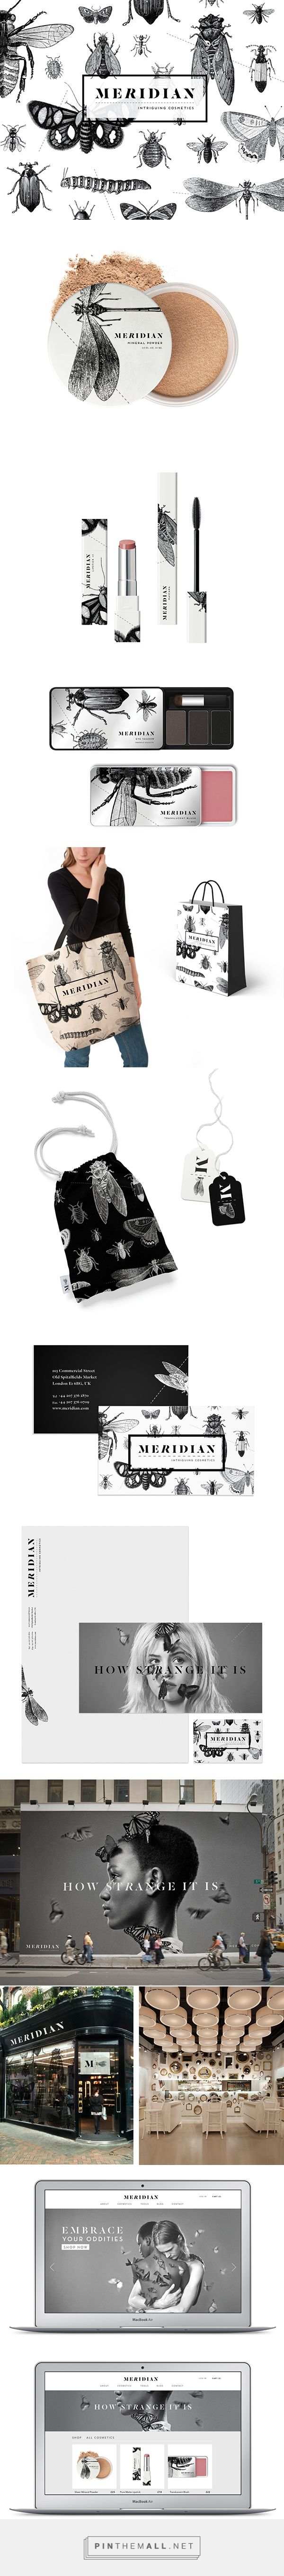 Meridian Cosmetics Branding and Packaging by Sally Carmichael on Behance   Fivestar Branding – Design and Branding Agency & Inspiration Gallery